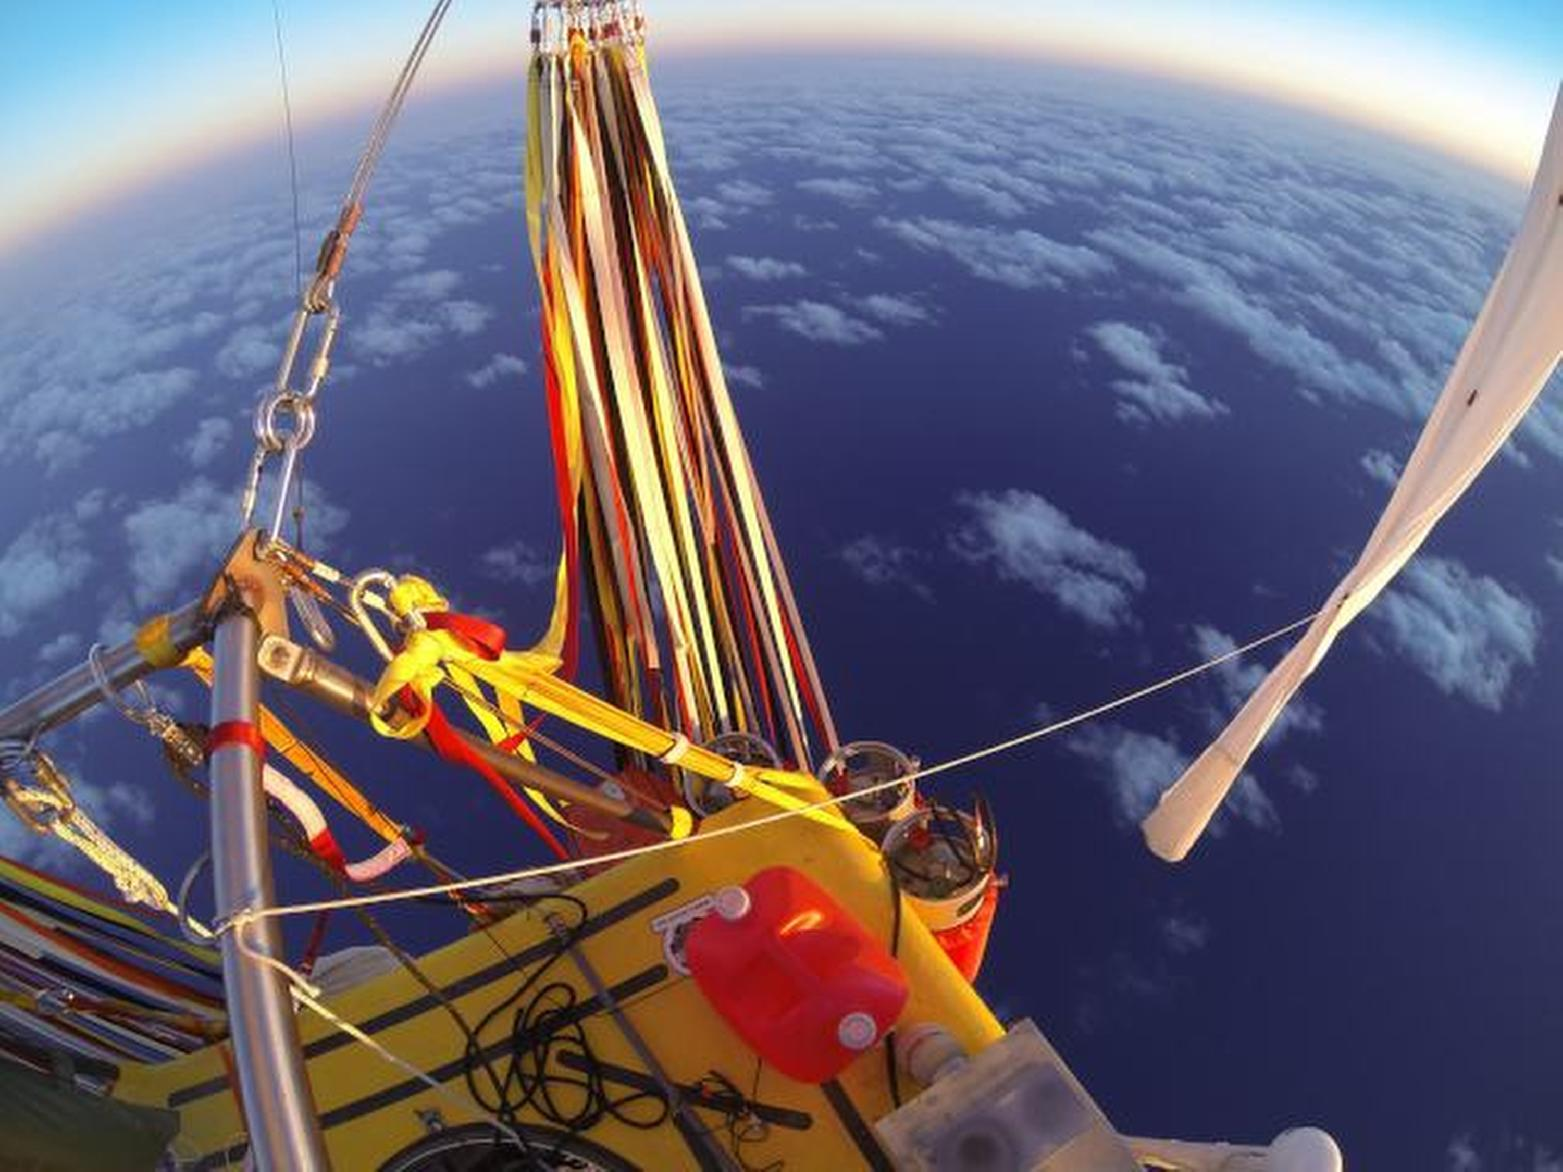 Balloon crew shifting course toward Mexico due to weather